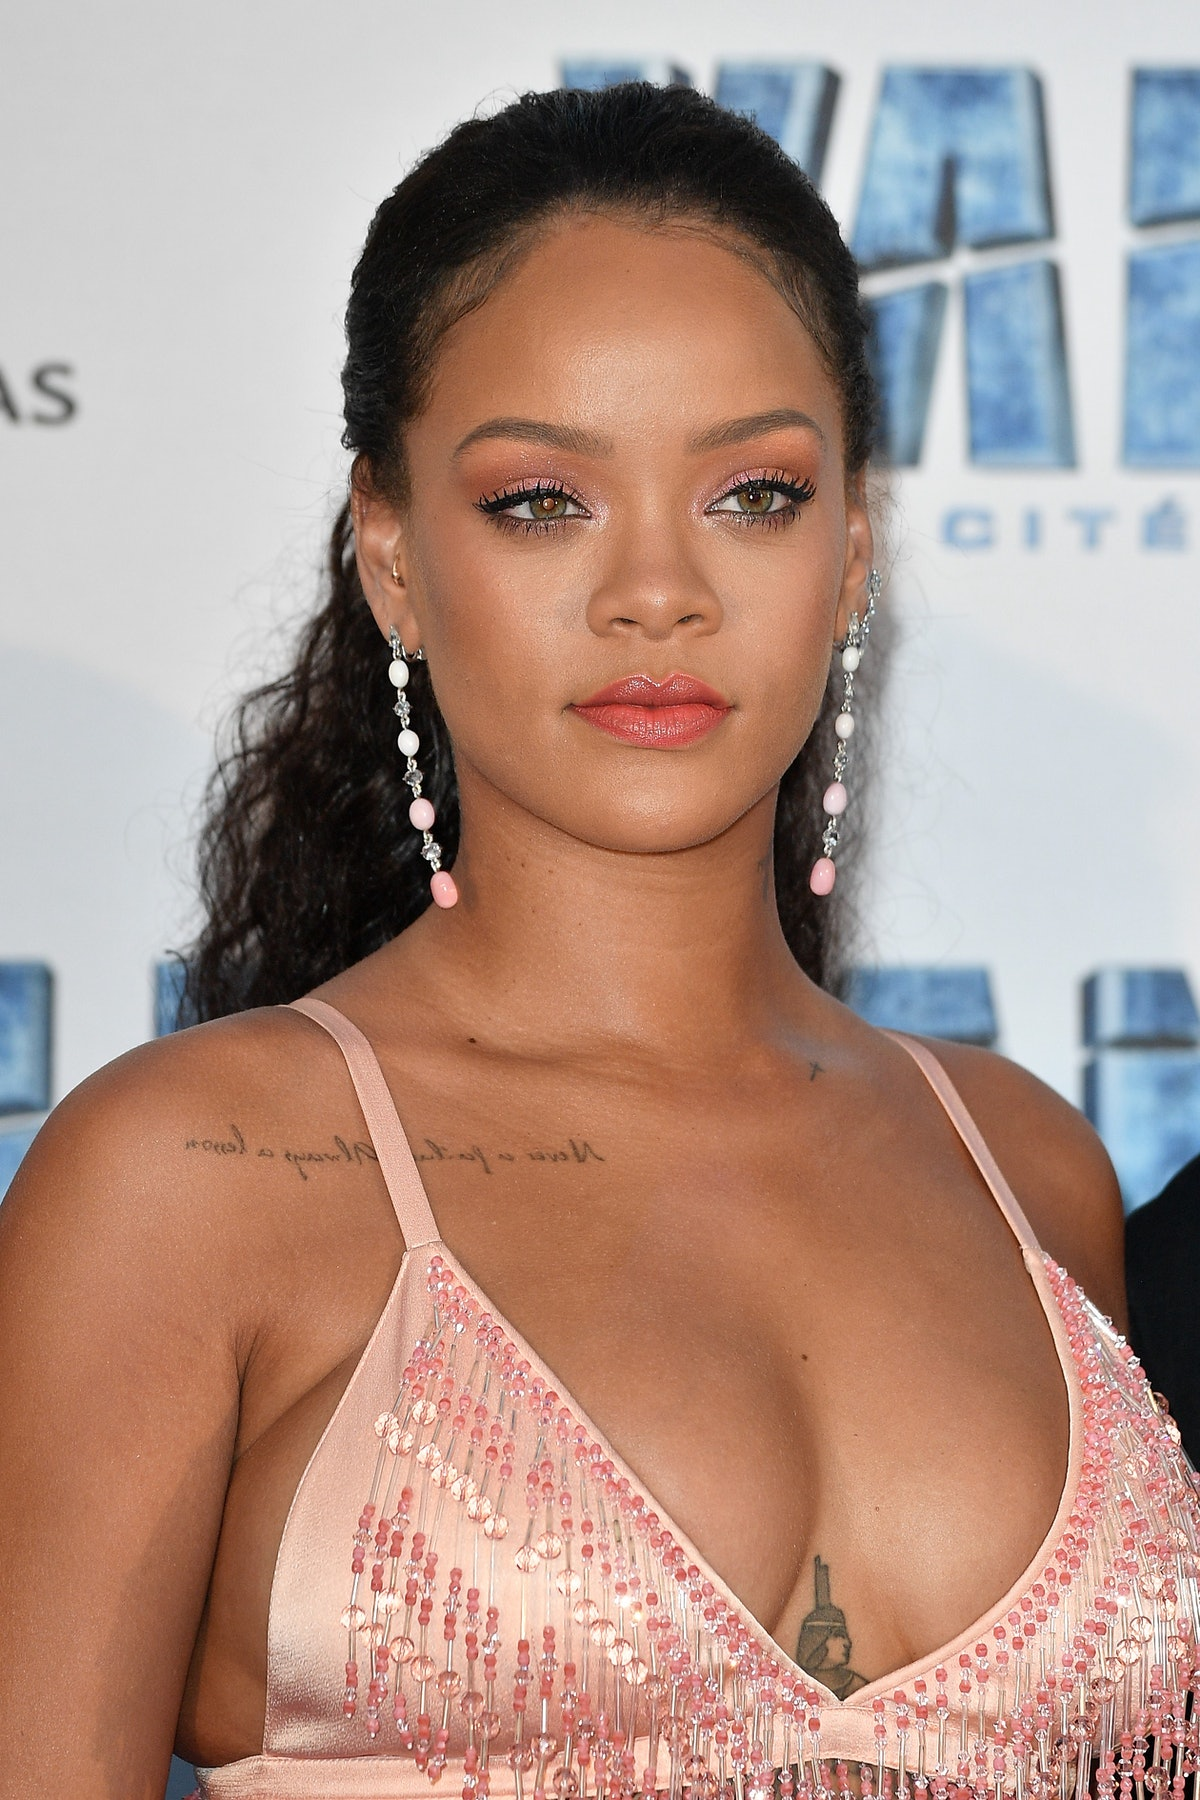 Rihanna at a 2017 movie premiere, who has spoken out about abusive relationships.